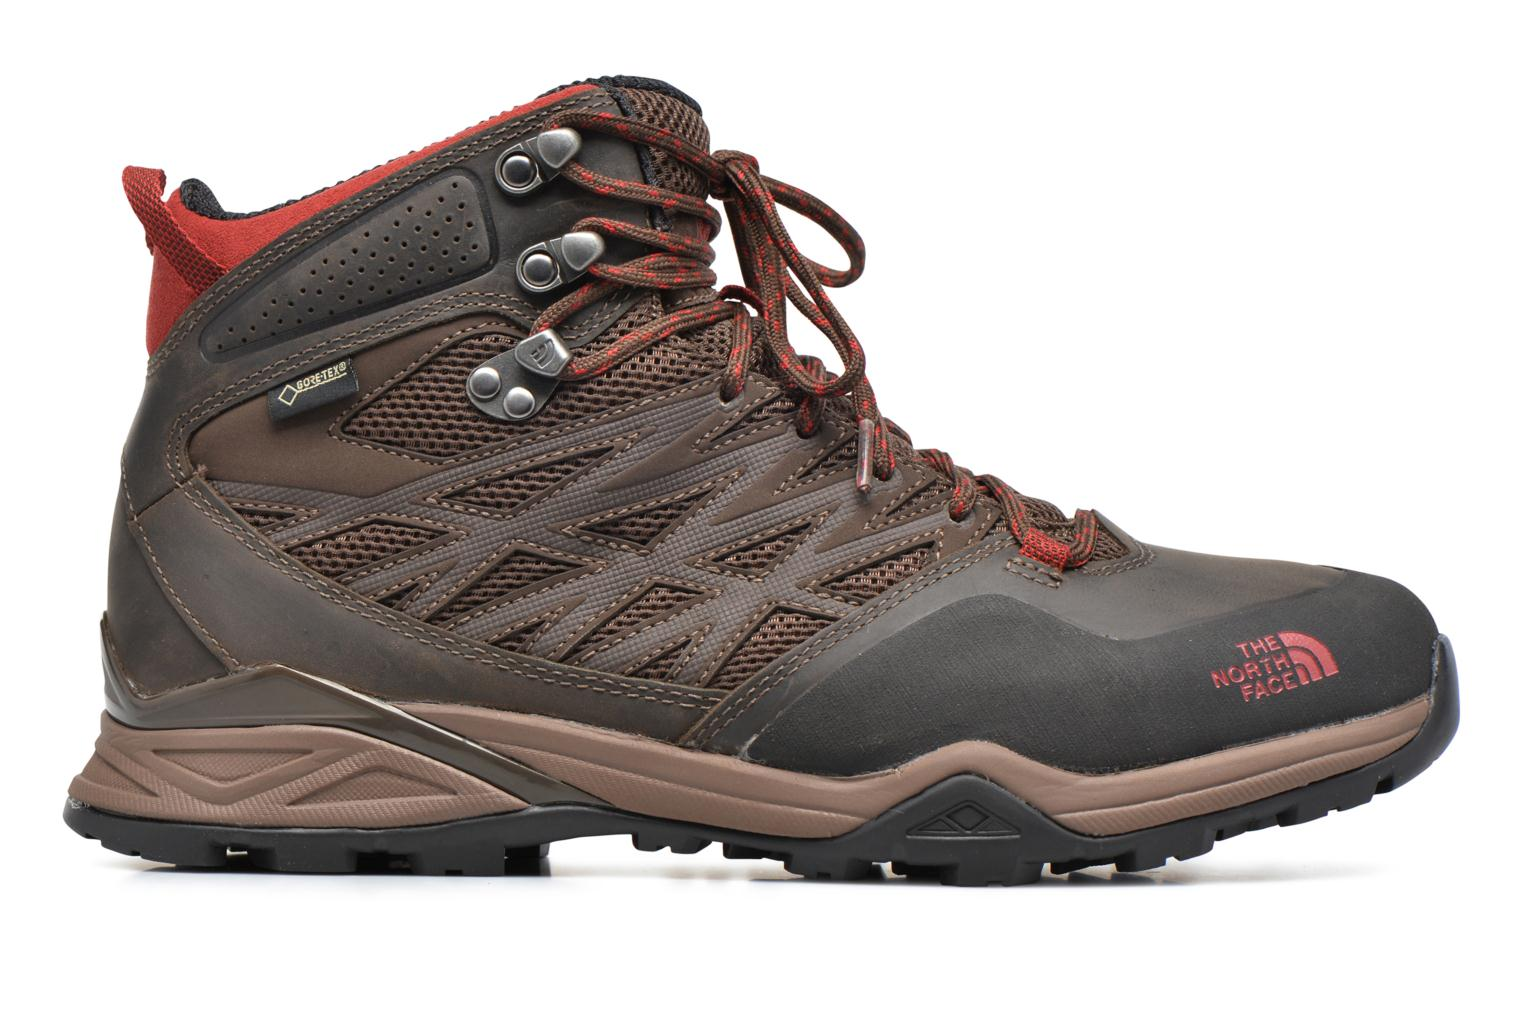 Chaussures de sport The North Face Hedgehog Hike Mid GTX Marron vue derrière